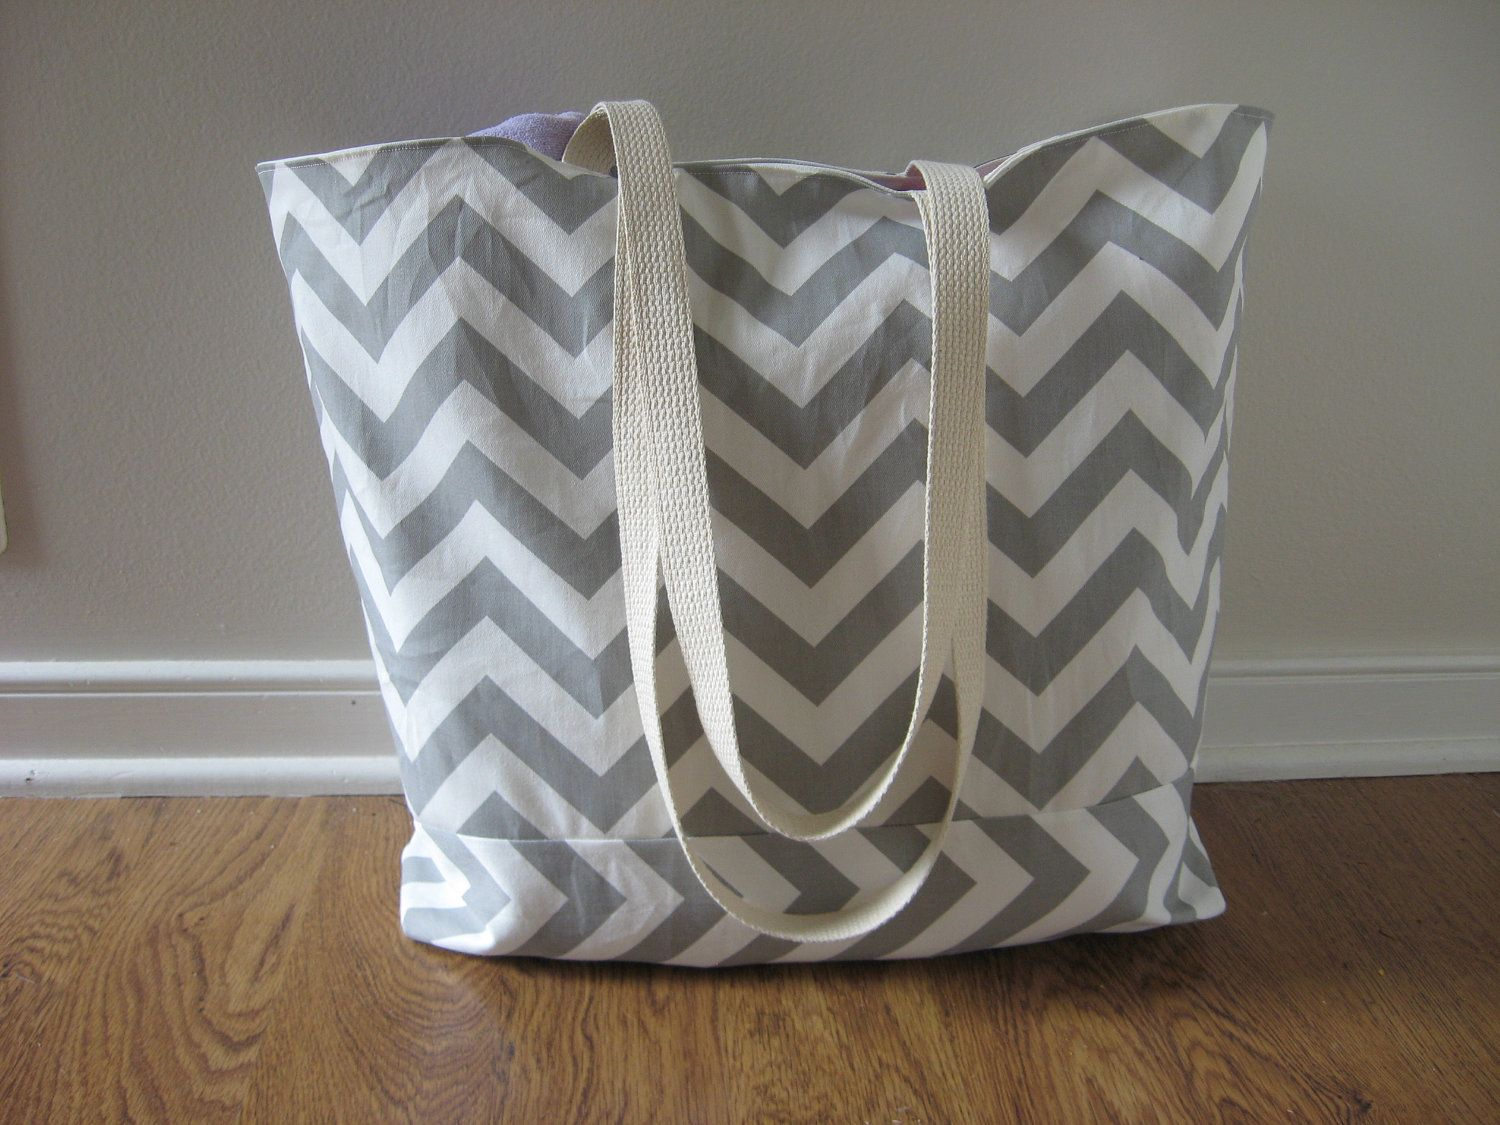 Large Beach Tote, Chevron Beach Bag, chevron tote bag Grey. $39.99 ...